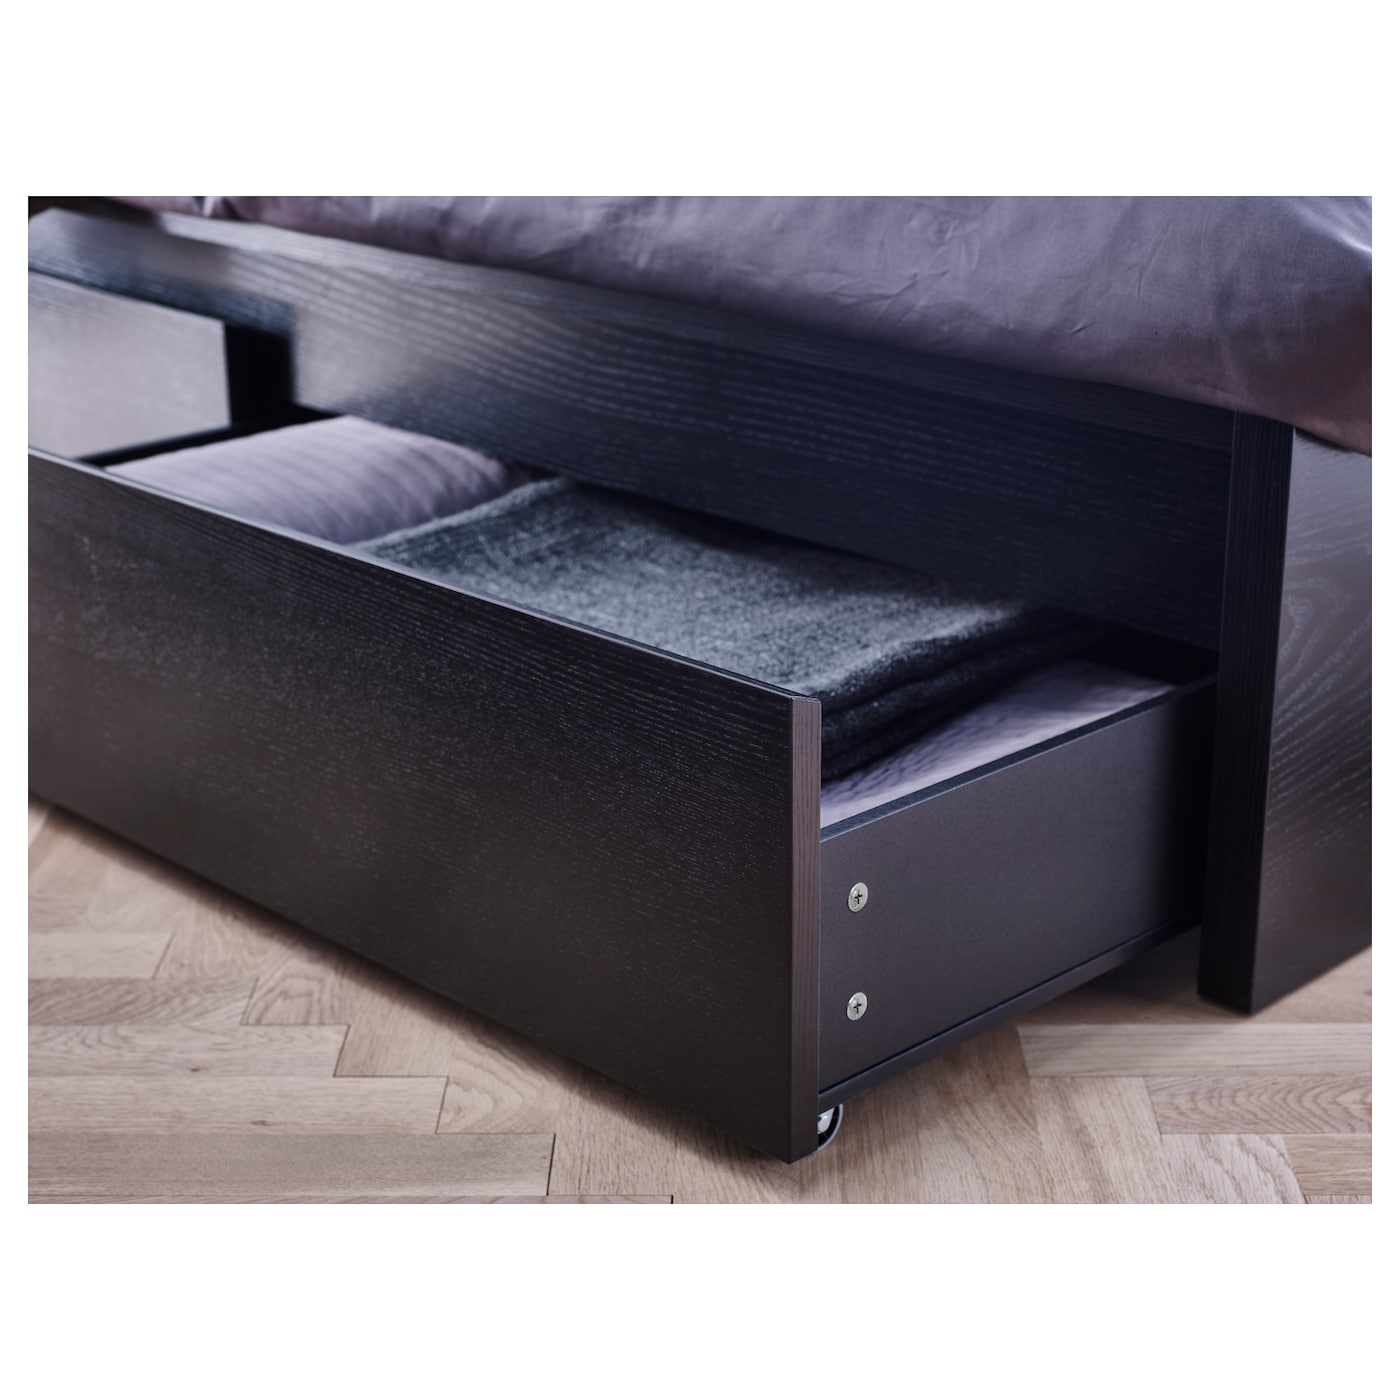 MALM Bed frame with 4 storage boxes Blackbrownlnset Standard